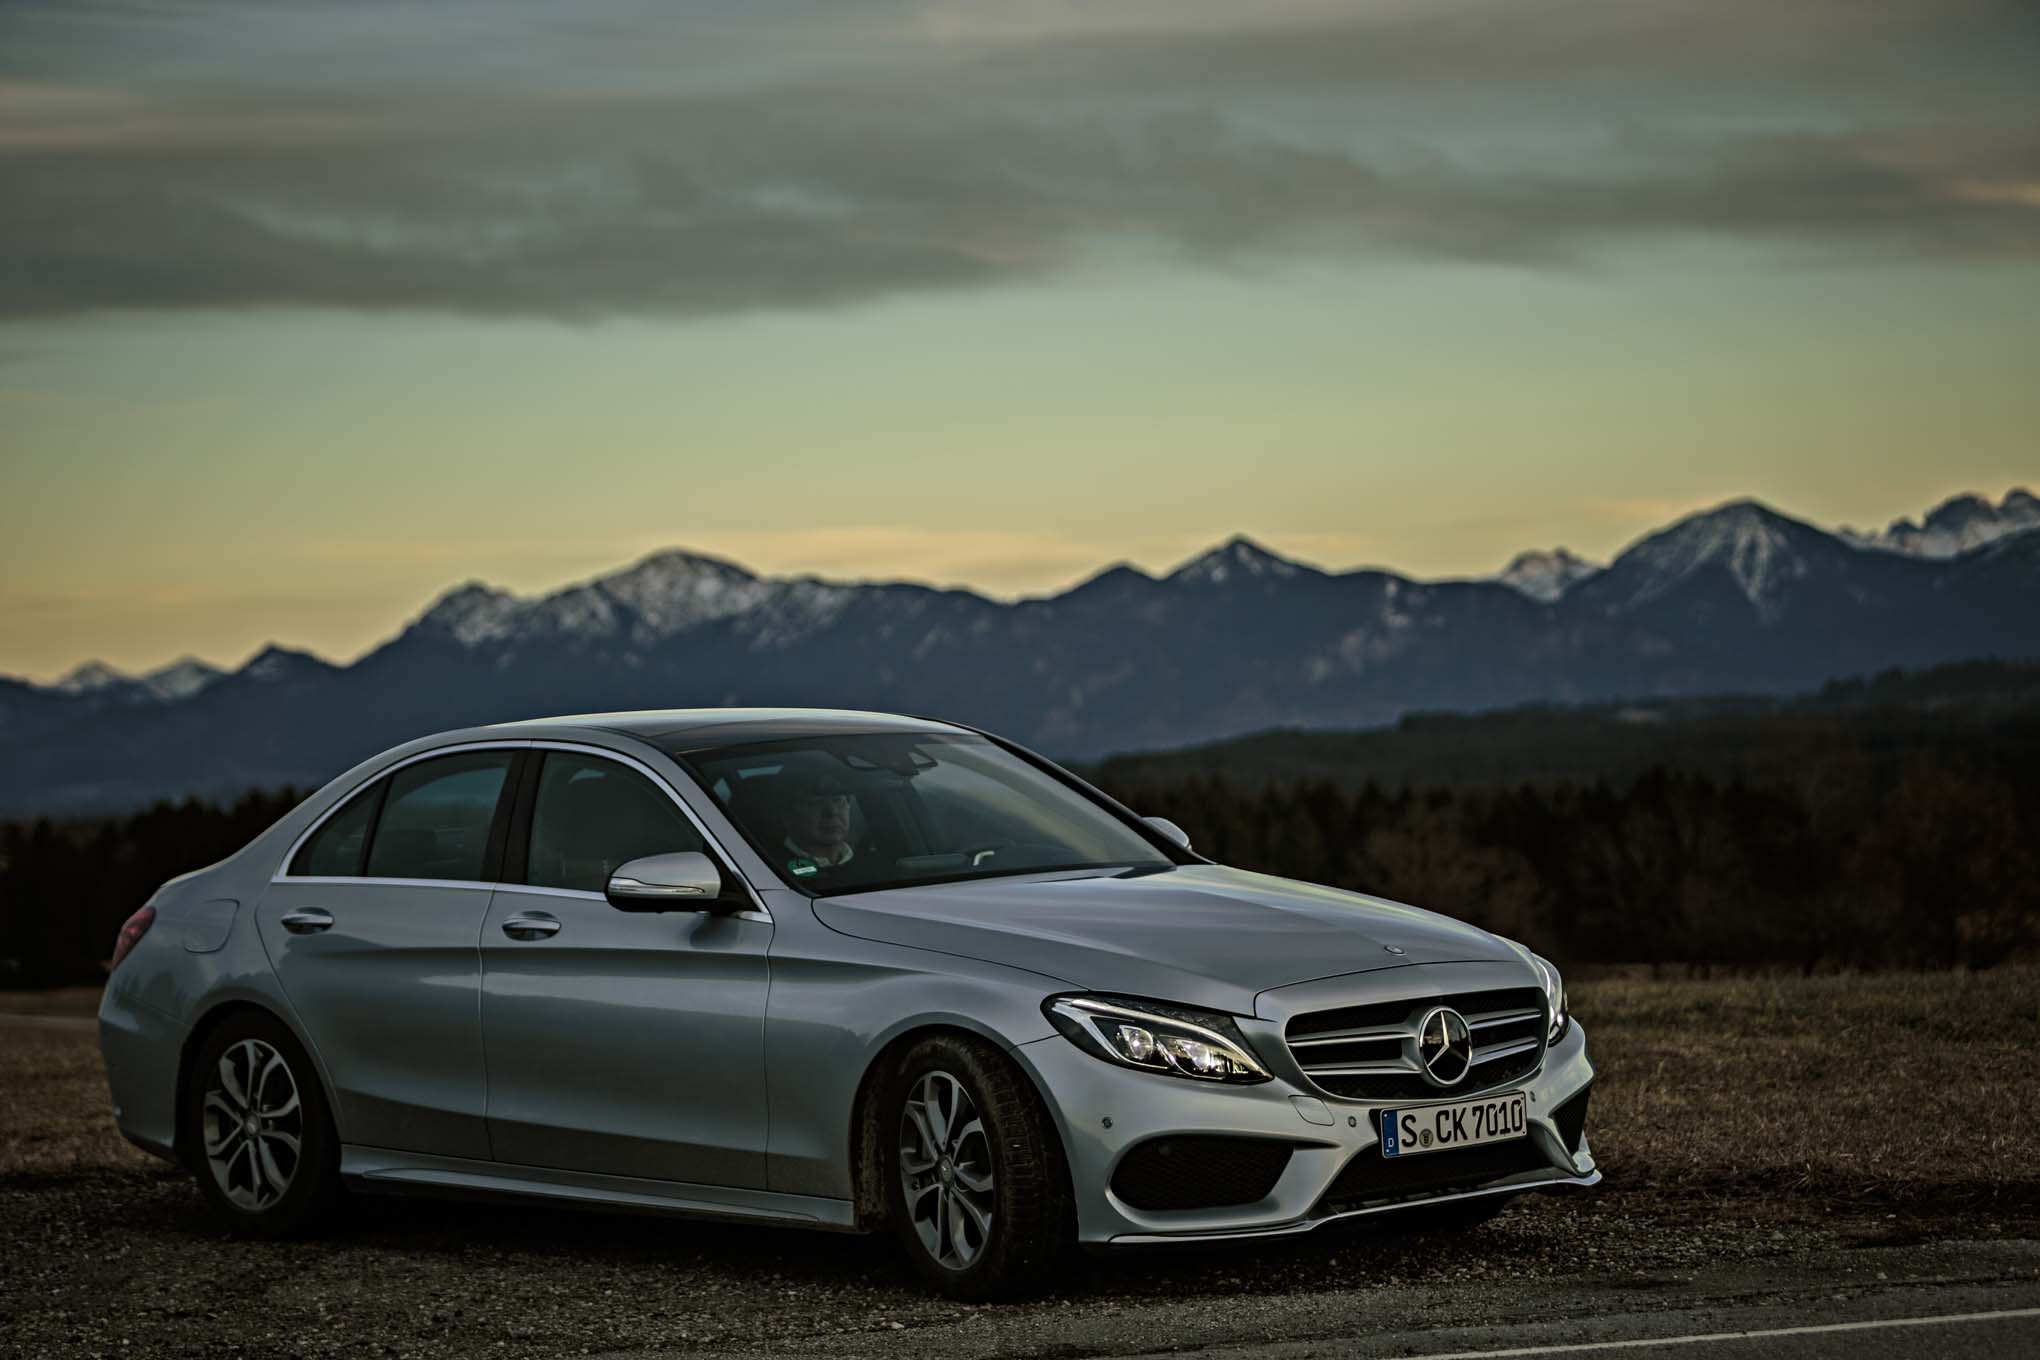 2015 Mercedes C-Class Starts at $41,325, Build it Your Way